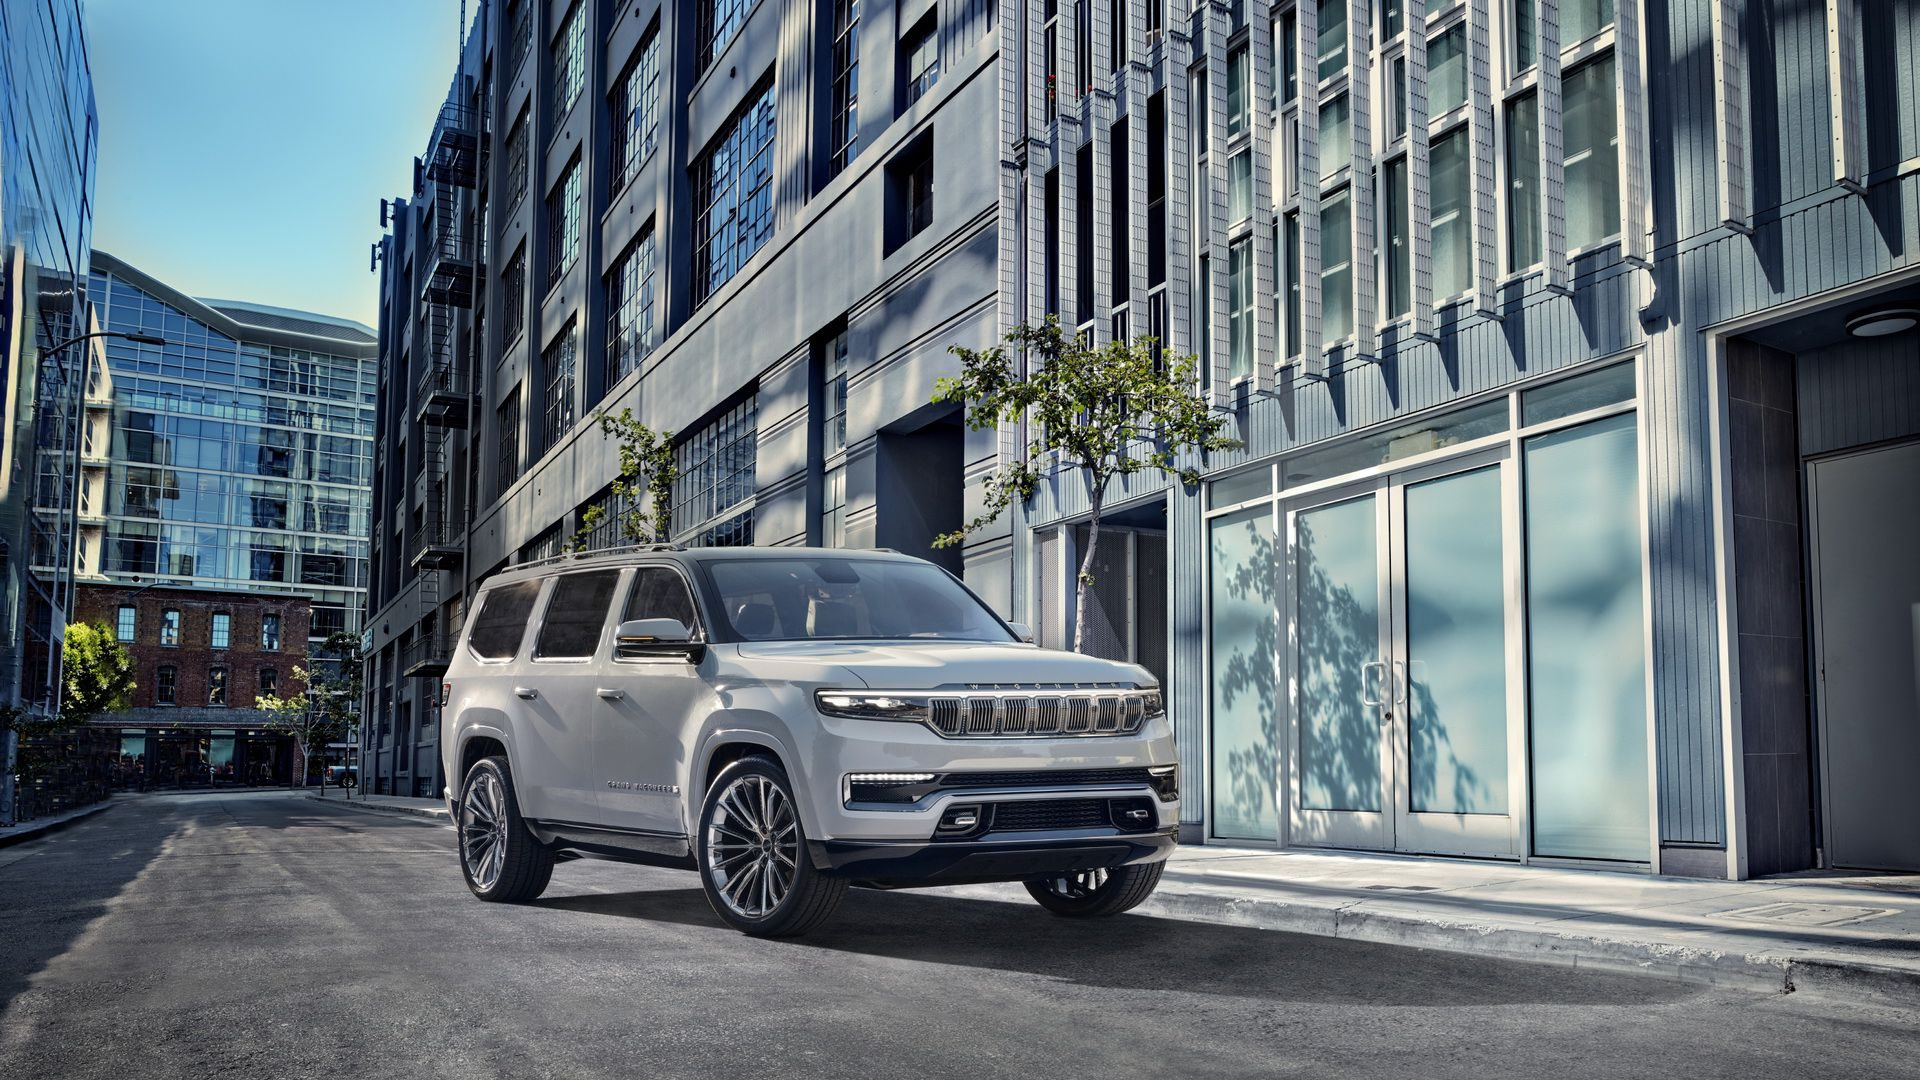 2020-Jeep-Grand-Wagoneer-Concept-10